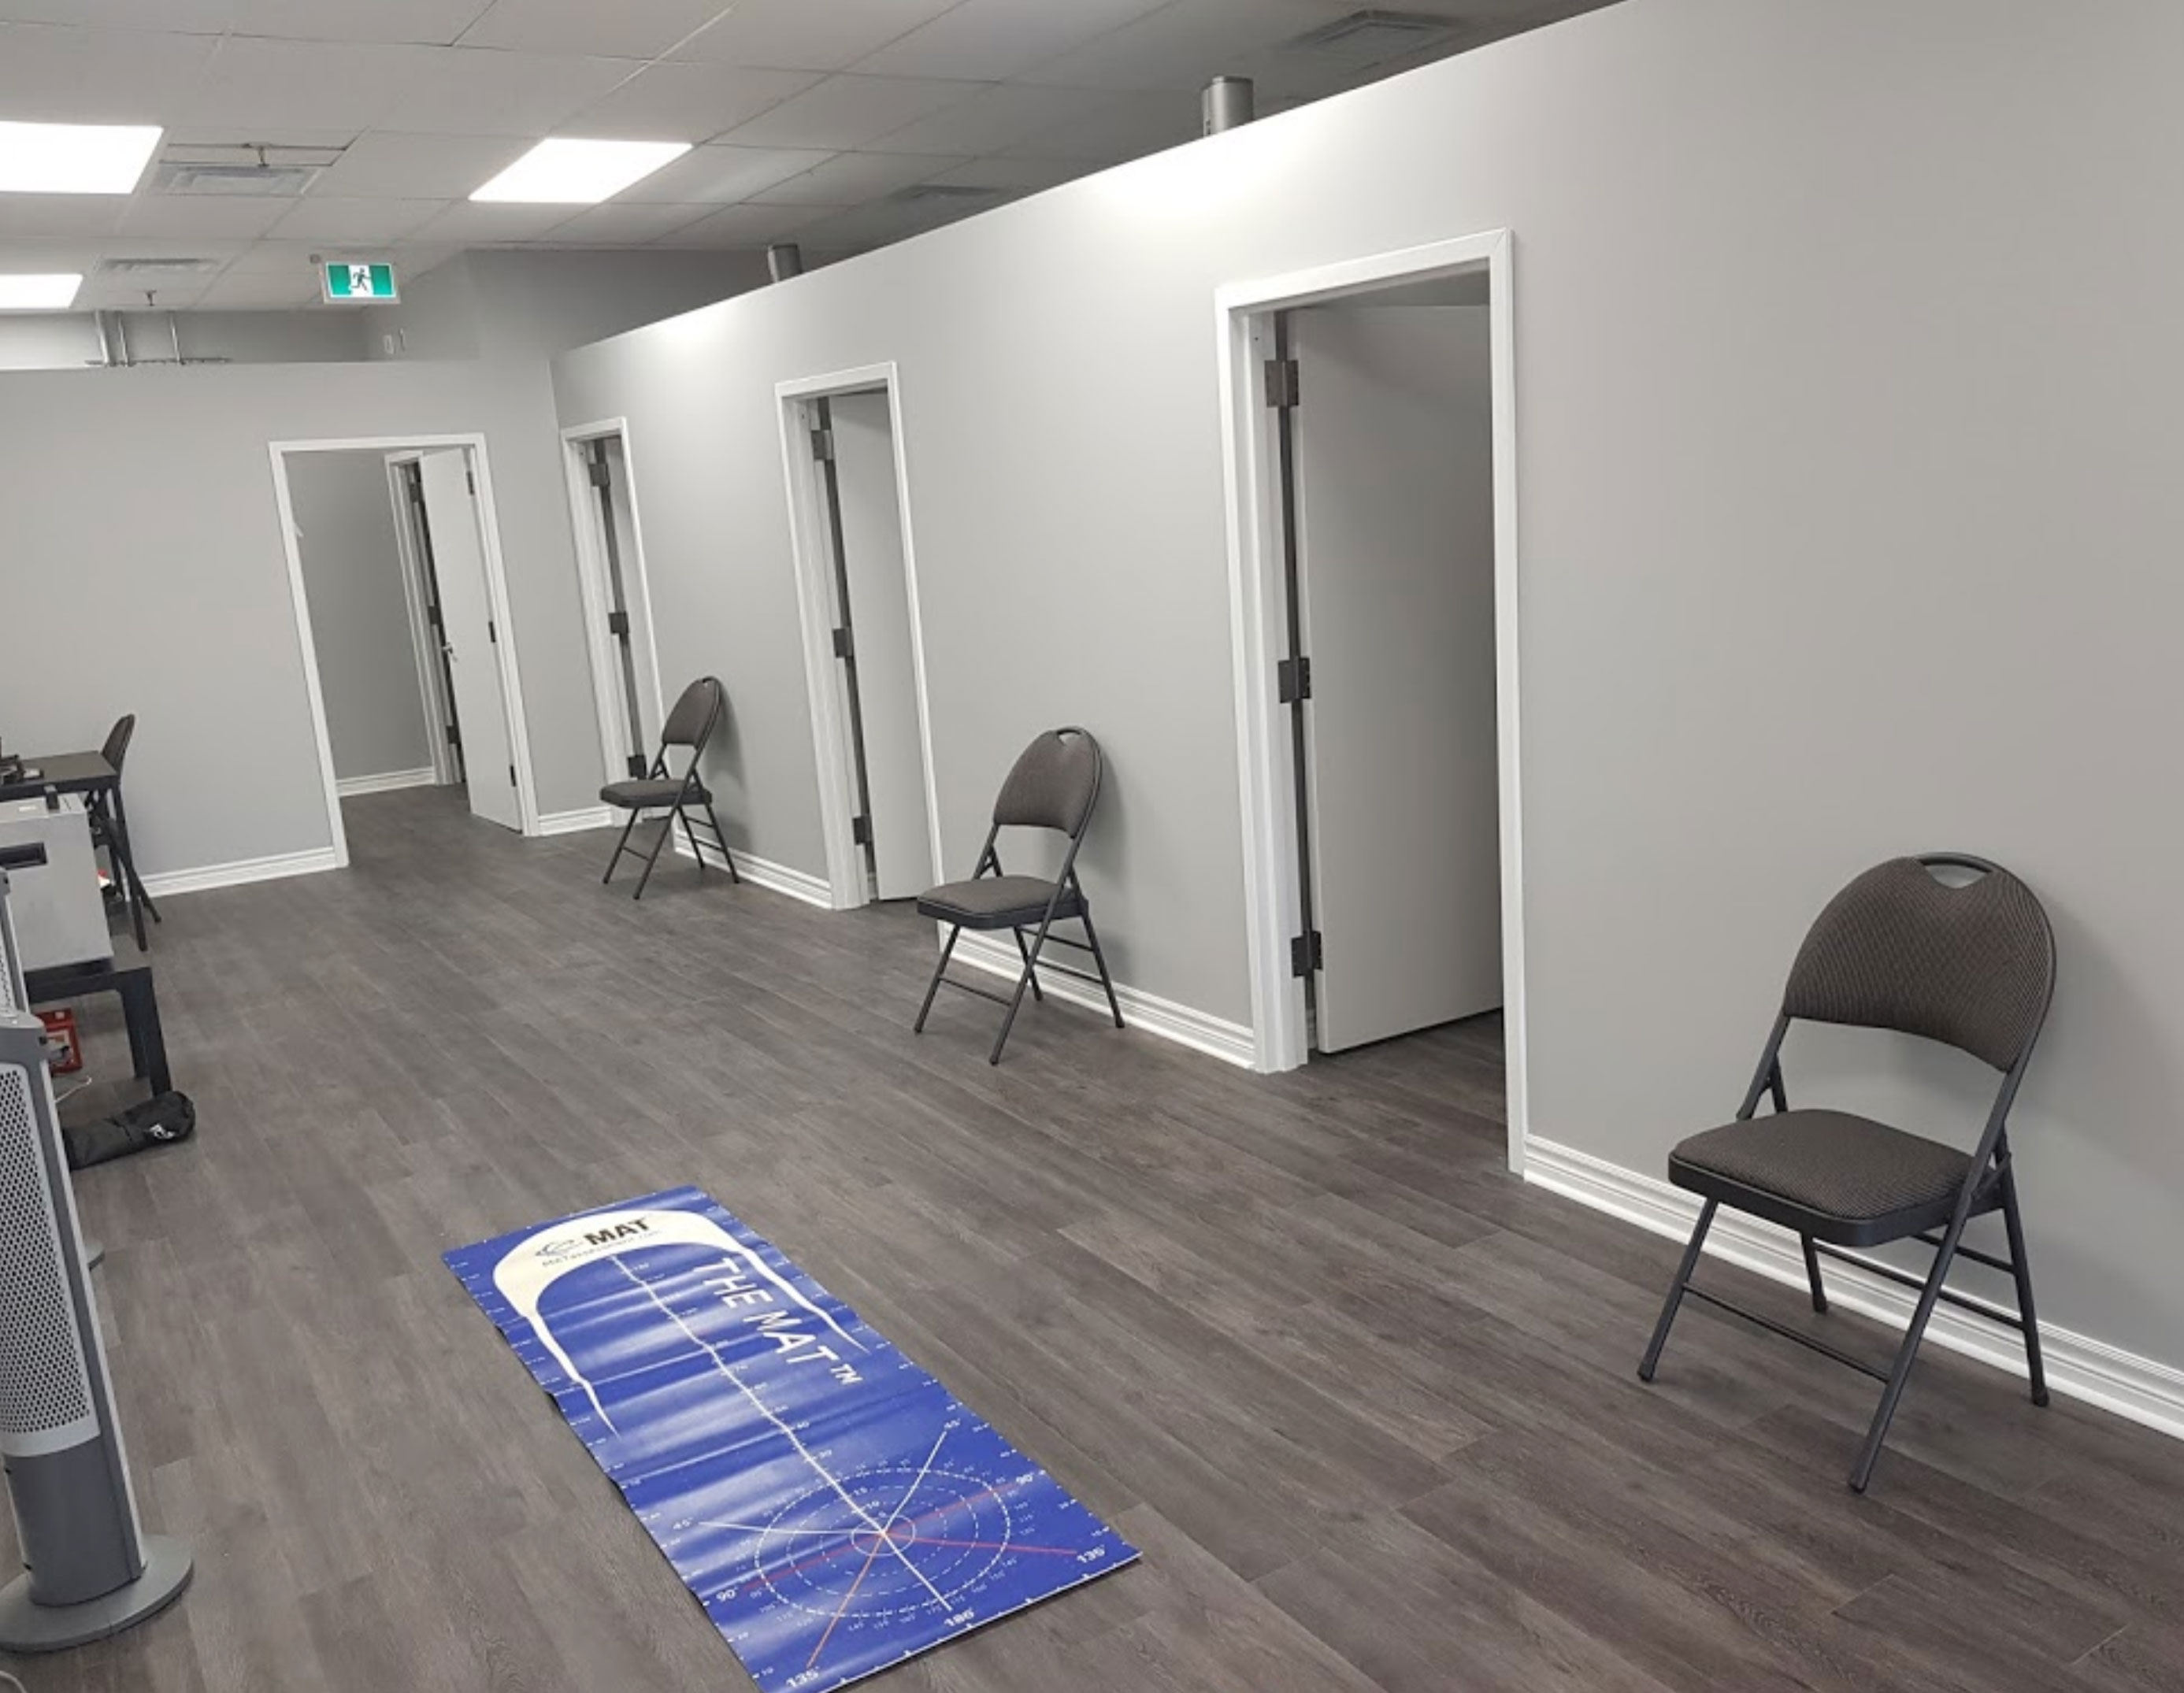 Image of the hallway of Isomatic Integrative Health Centre physiotherapy clinic in Woodbridge